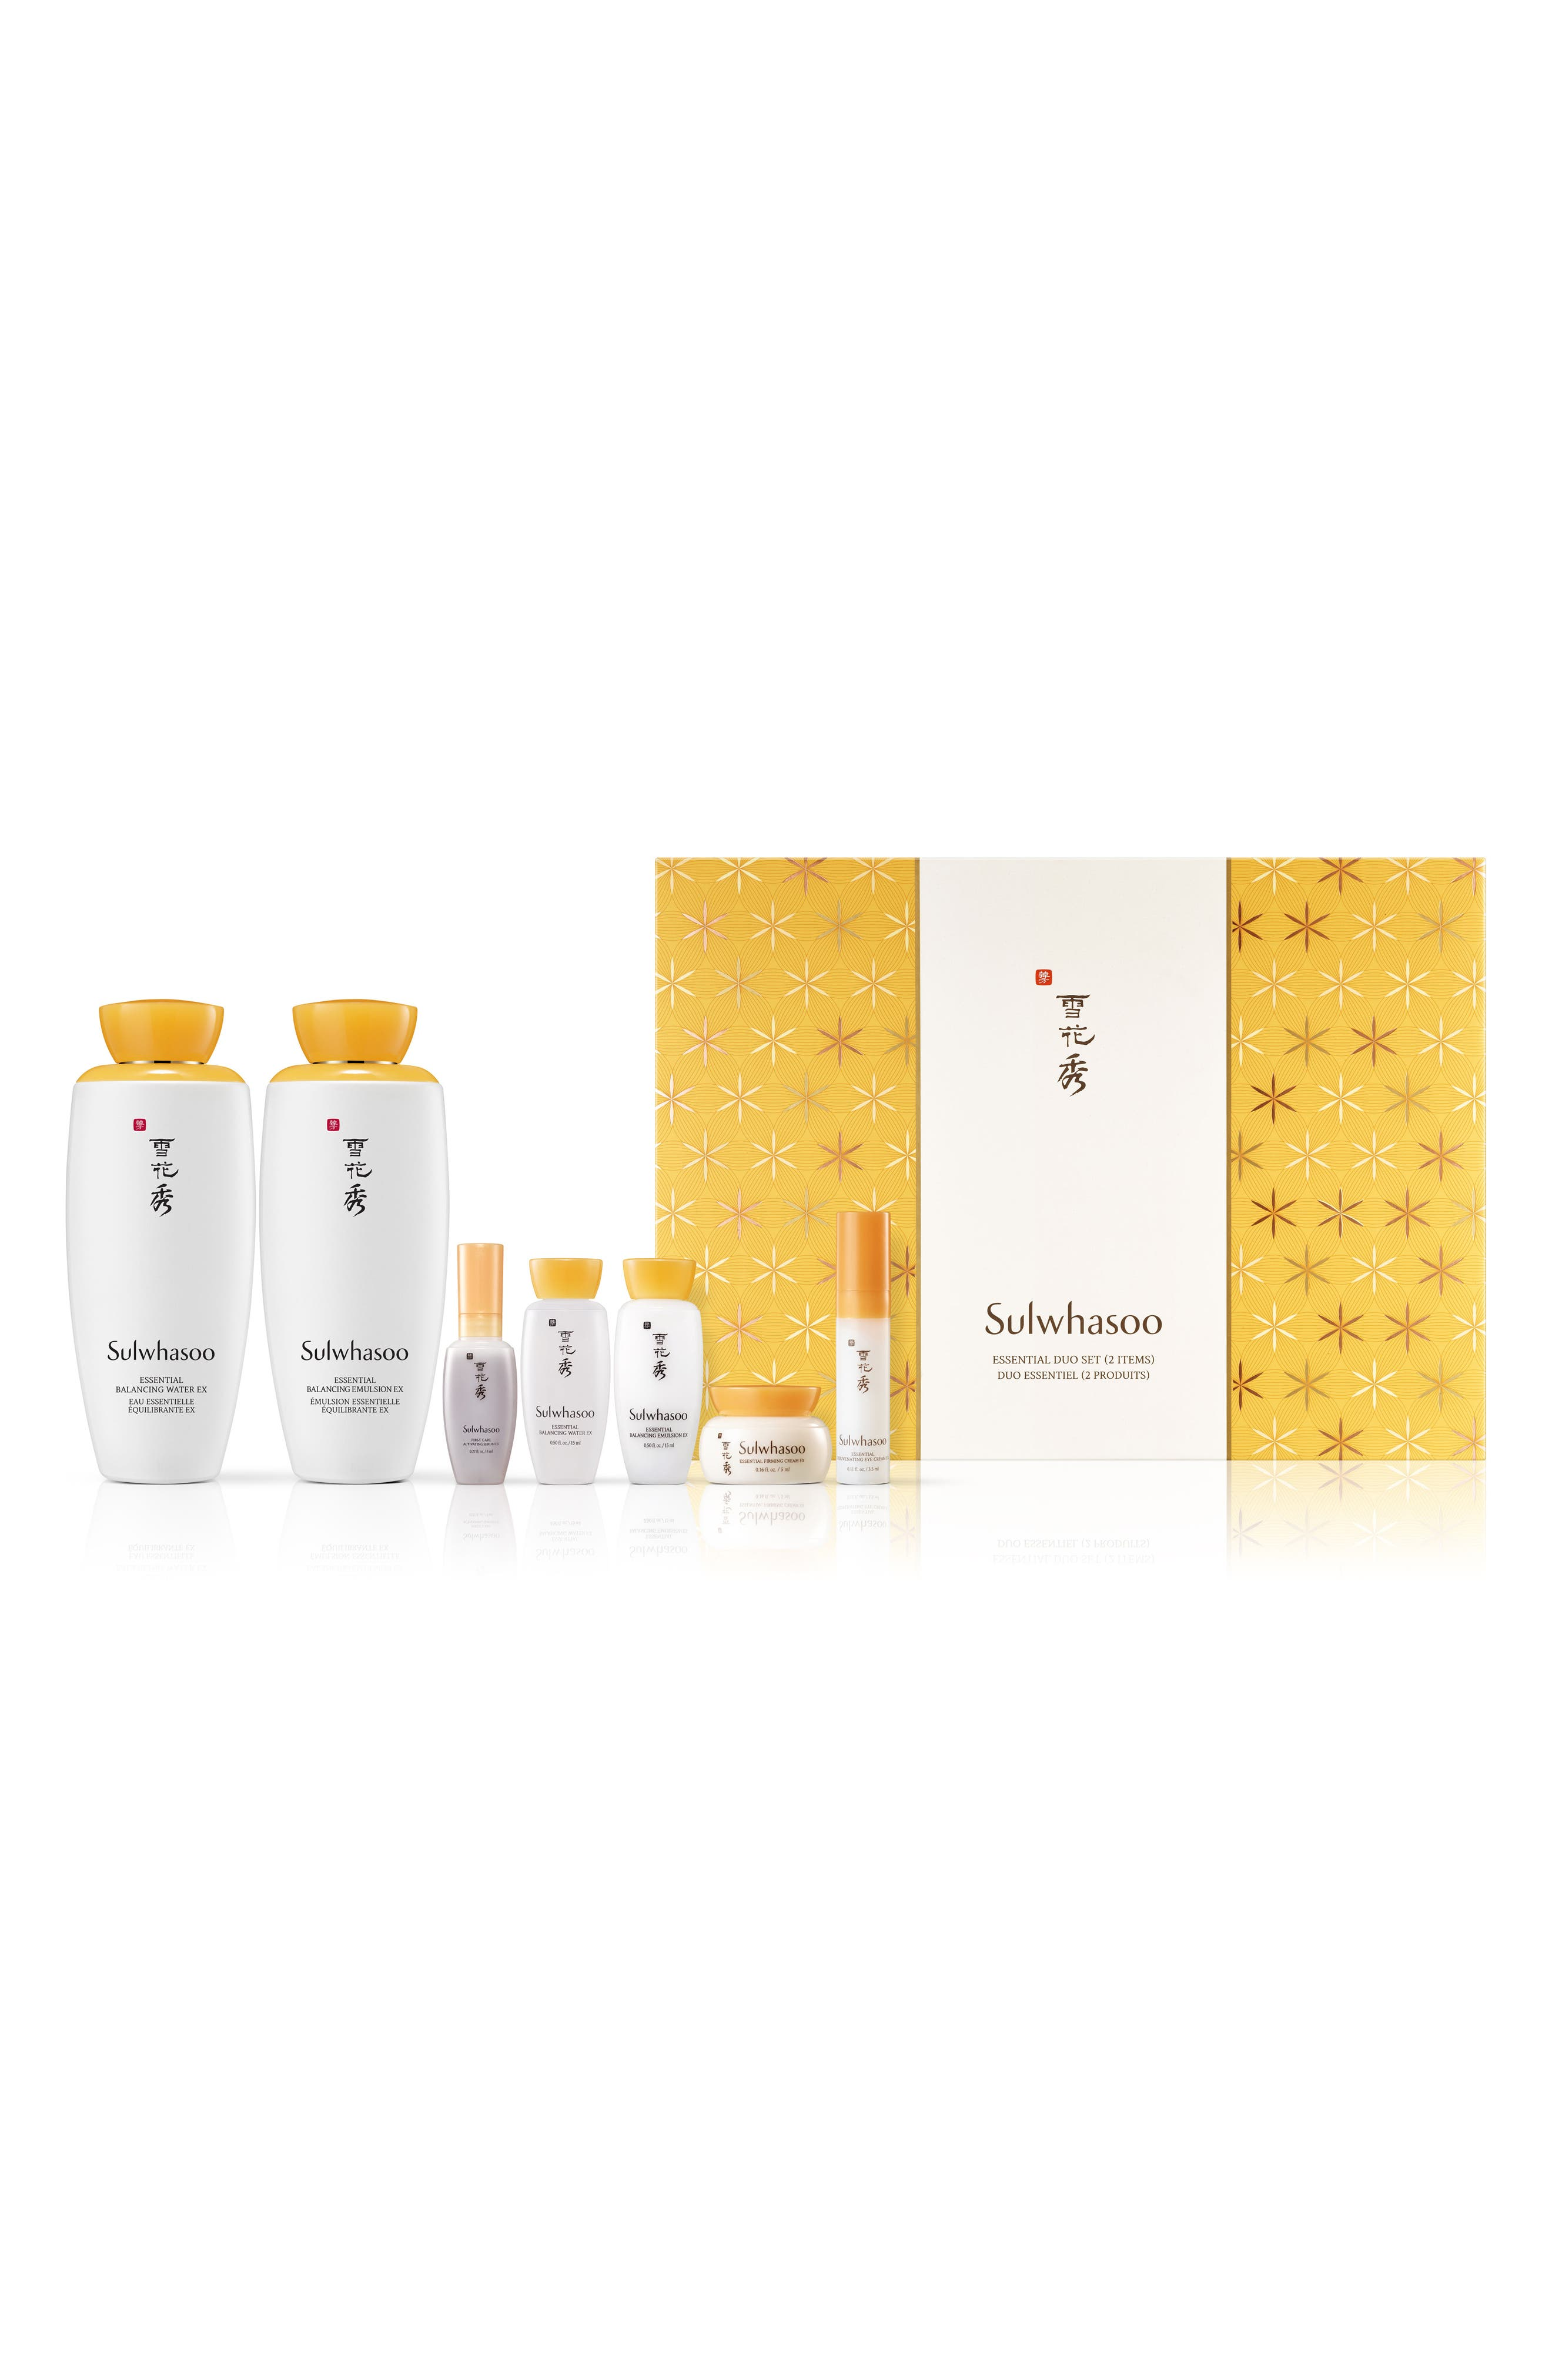 Sulwhasoo Essentials Collection ($168 Value)